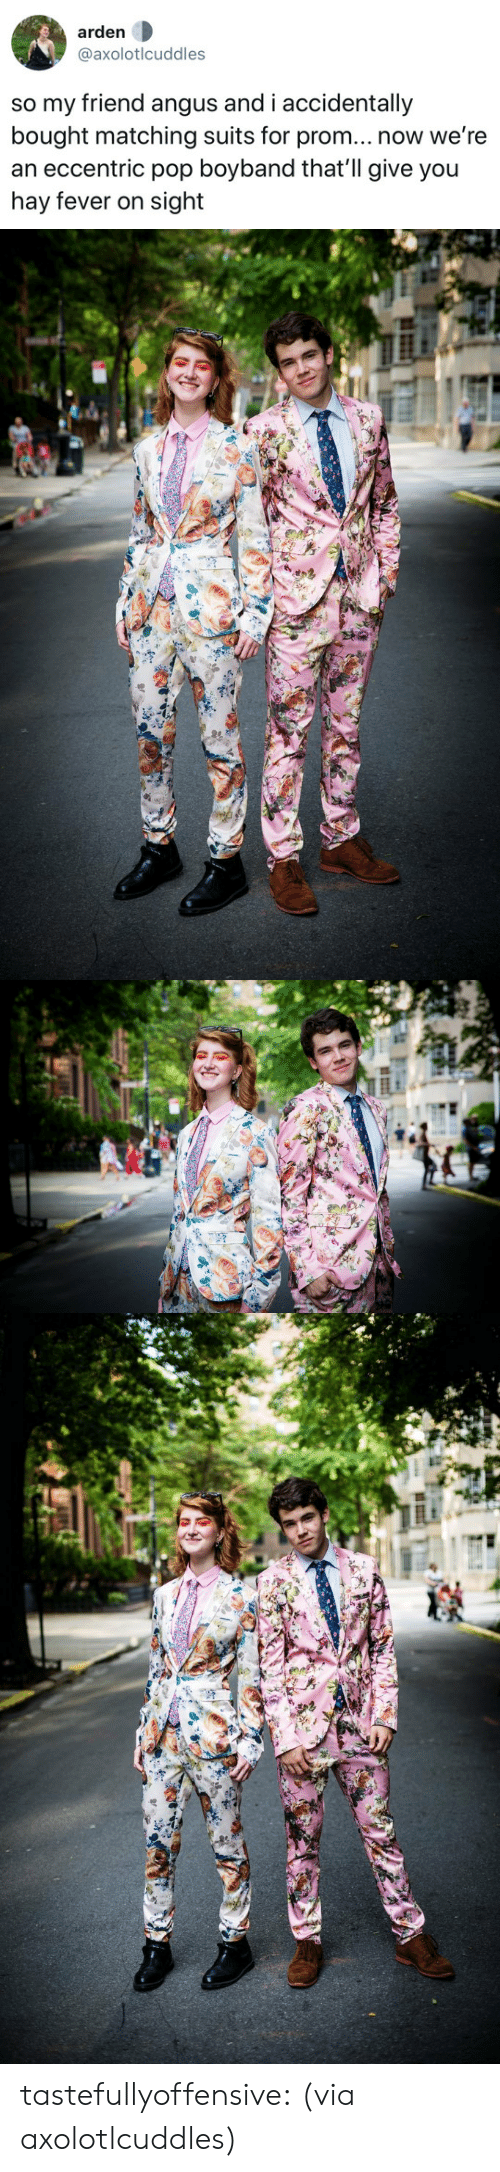 Pop, Target, and Tumblr: arden  @axolotlcuddles  so my friend angus and i accidentally  bought matching suits for prom... now we're  an eccentric pop boyband that'll give you  hay fever on sight tastefullyoffensive:  (via axolotlcuddles)